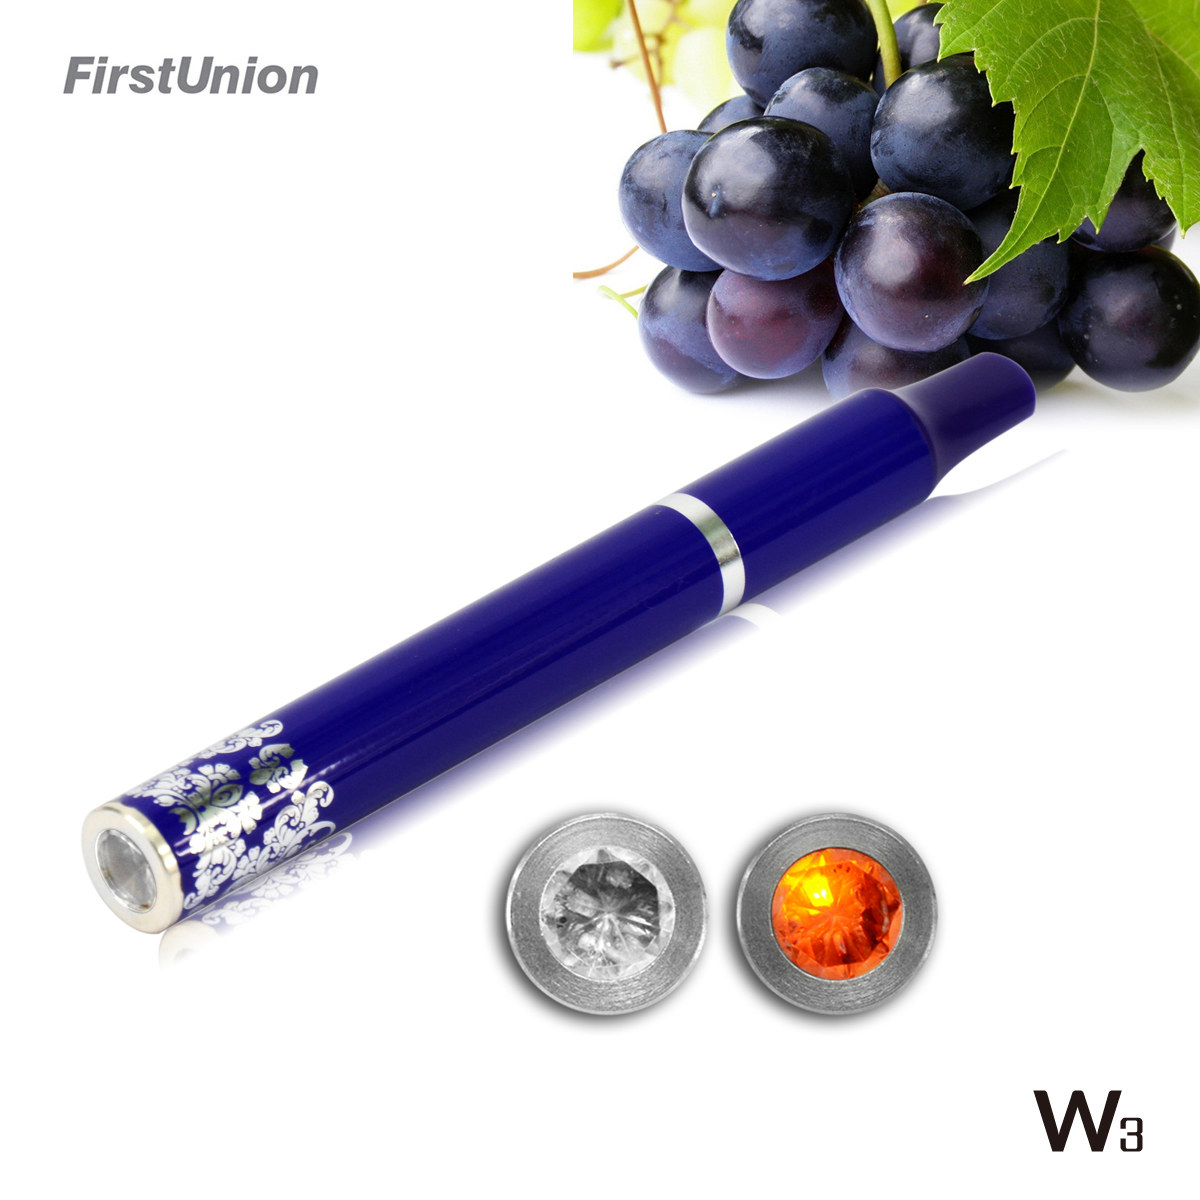 chinese new product cute electronic cigarette W3 1000puffs fresh fruit flavors disposable shisha pen